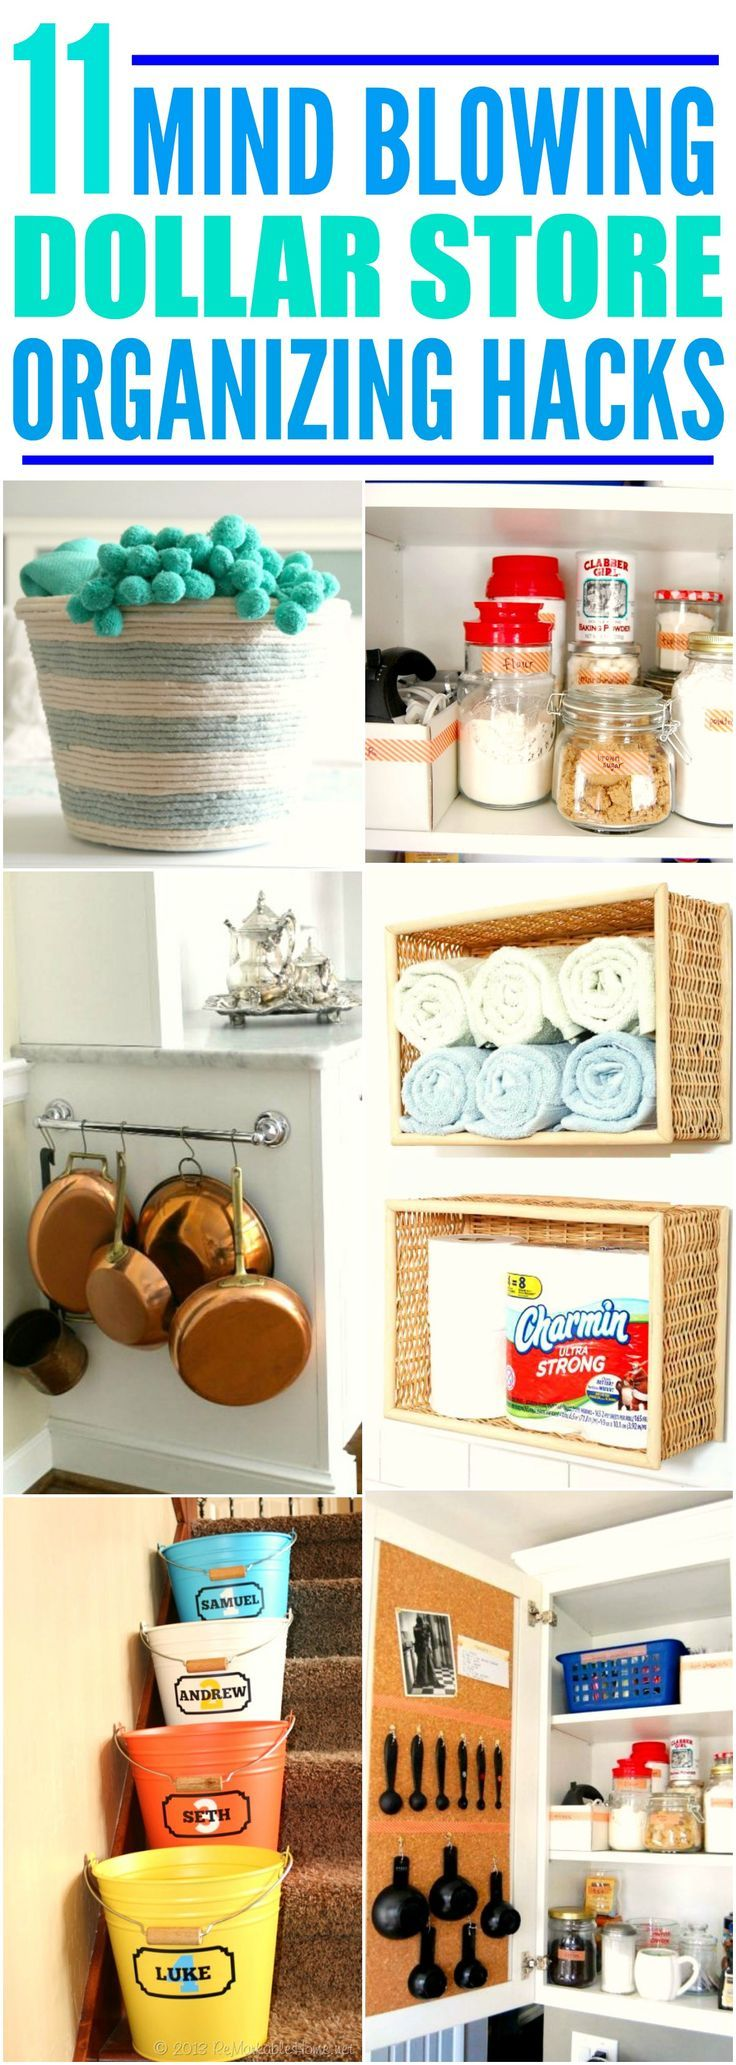 11 Dollar Store Organization Hacks That Ll Make Life So Much Easier Life Changing Tips And Home